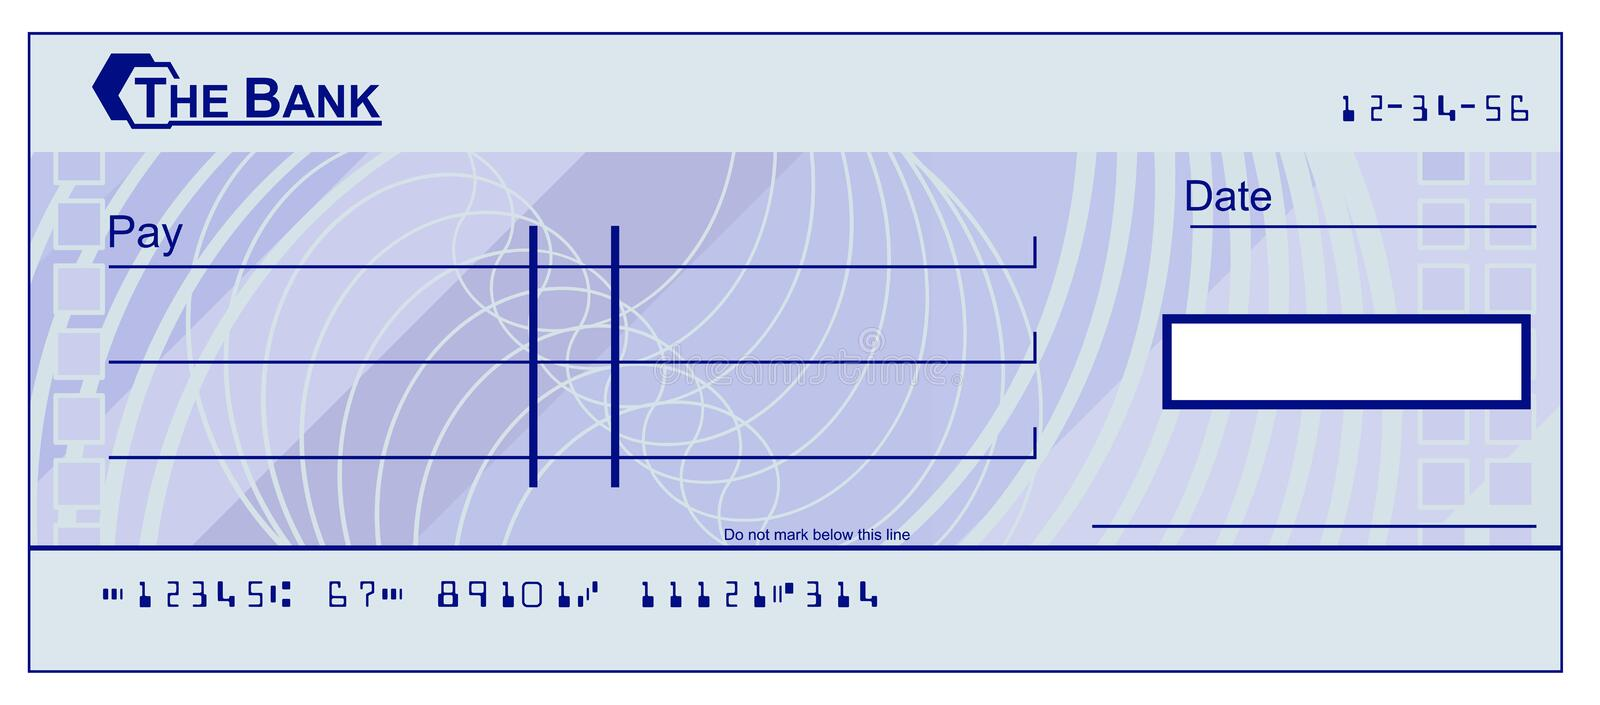 Fake Check Template Free from thumbs.dreamstime.com